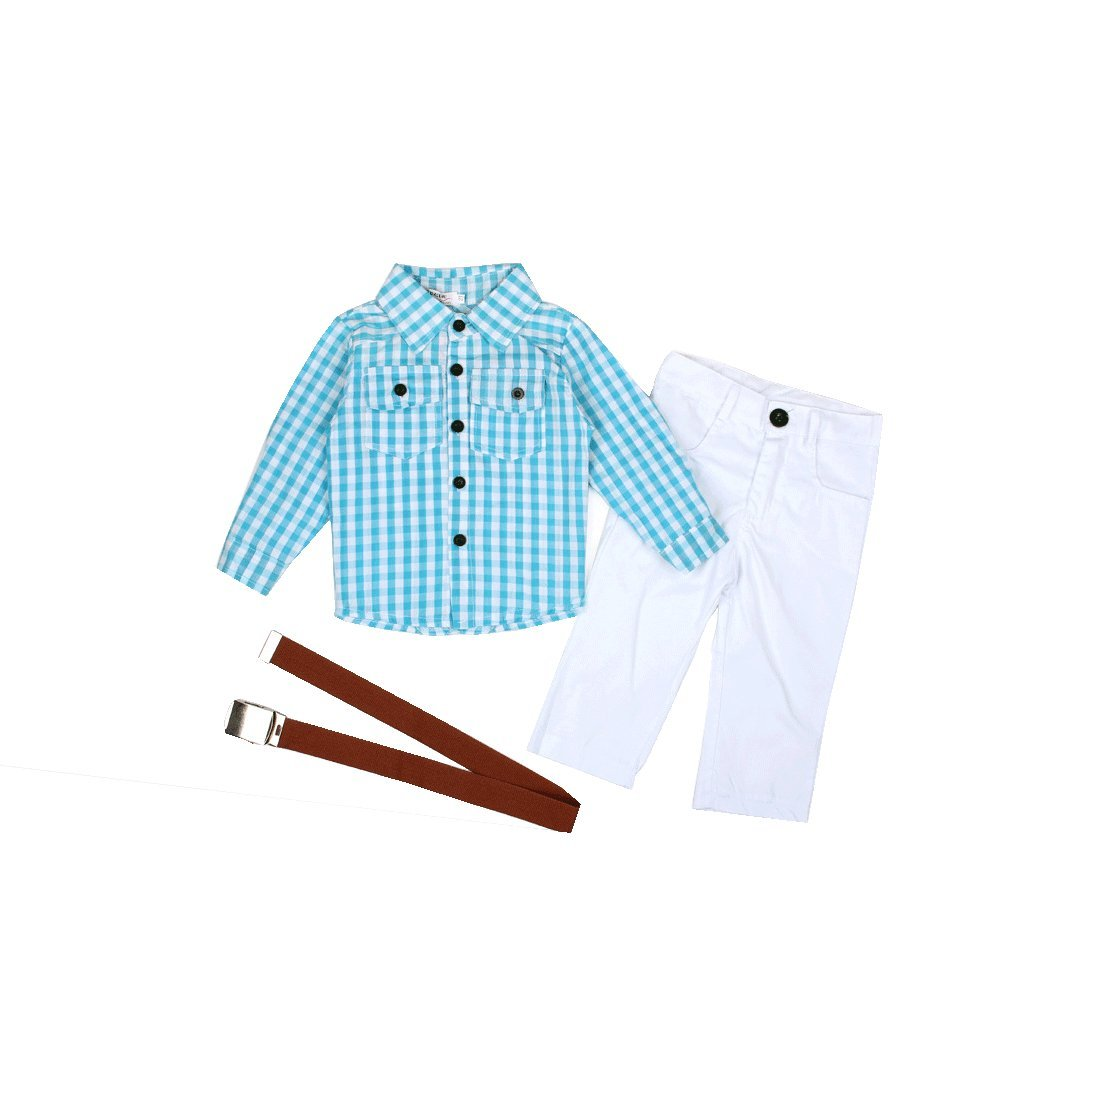 Little Boys' Striped Shirt And Casual Trousers Set